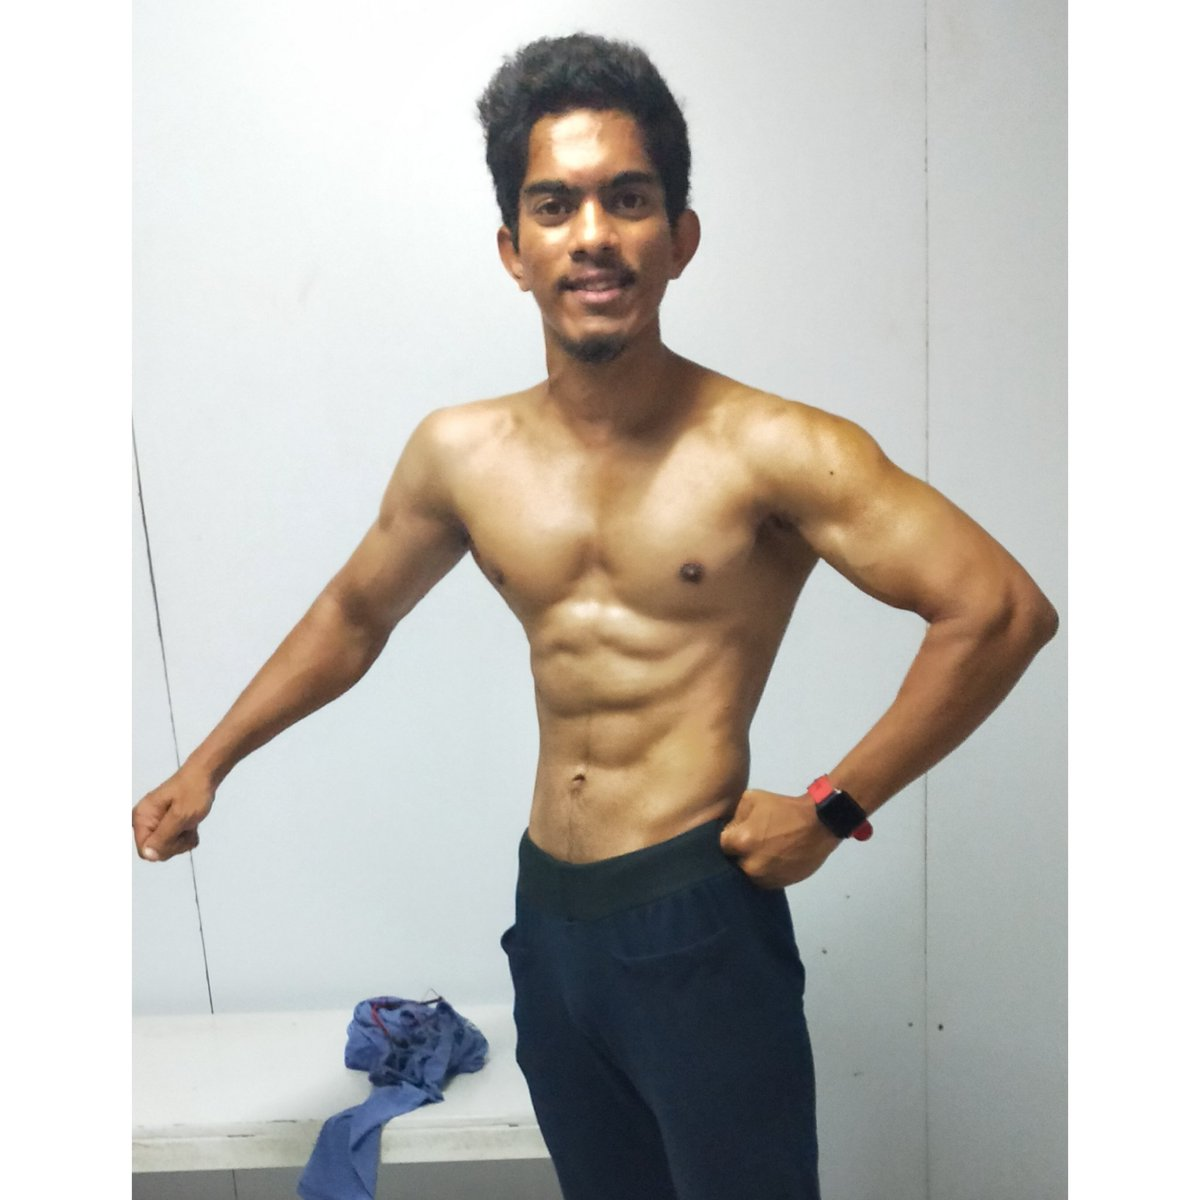 Want to have good physique? What it takes? - Hardwork. - Dedication. - Discipline. - Patience. - Sacrifices. - Will Power. - Being out of comfort zone all the time. - Money. - Always keeping the positive vibe. - Eating habits as well sleeping pattern matters alott. pic.twitter.com/PWIrvURylc